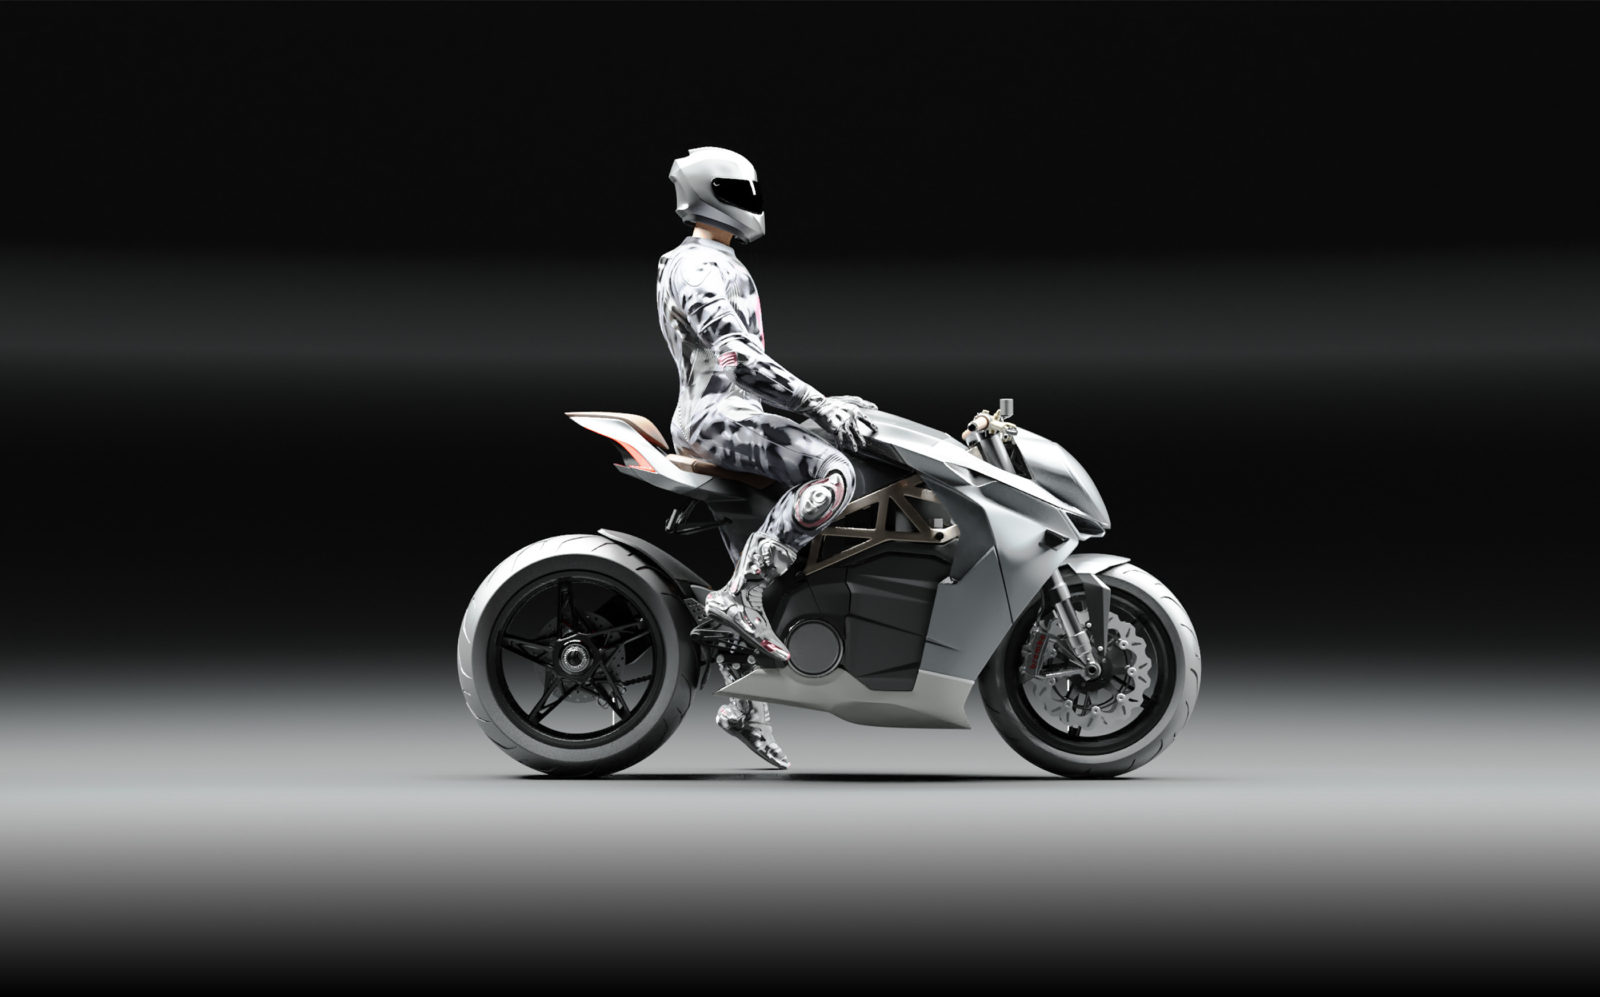 aeolian-electric-moto-gp-hyperbike-rendering-appeals-with-tried-and-tested-design